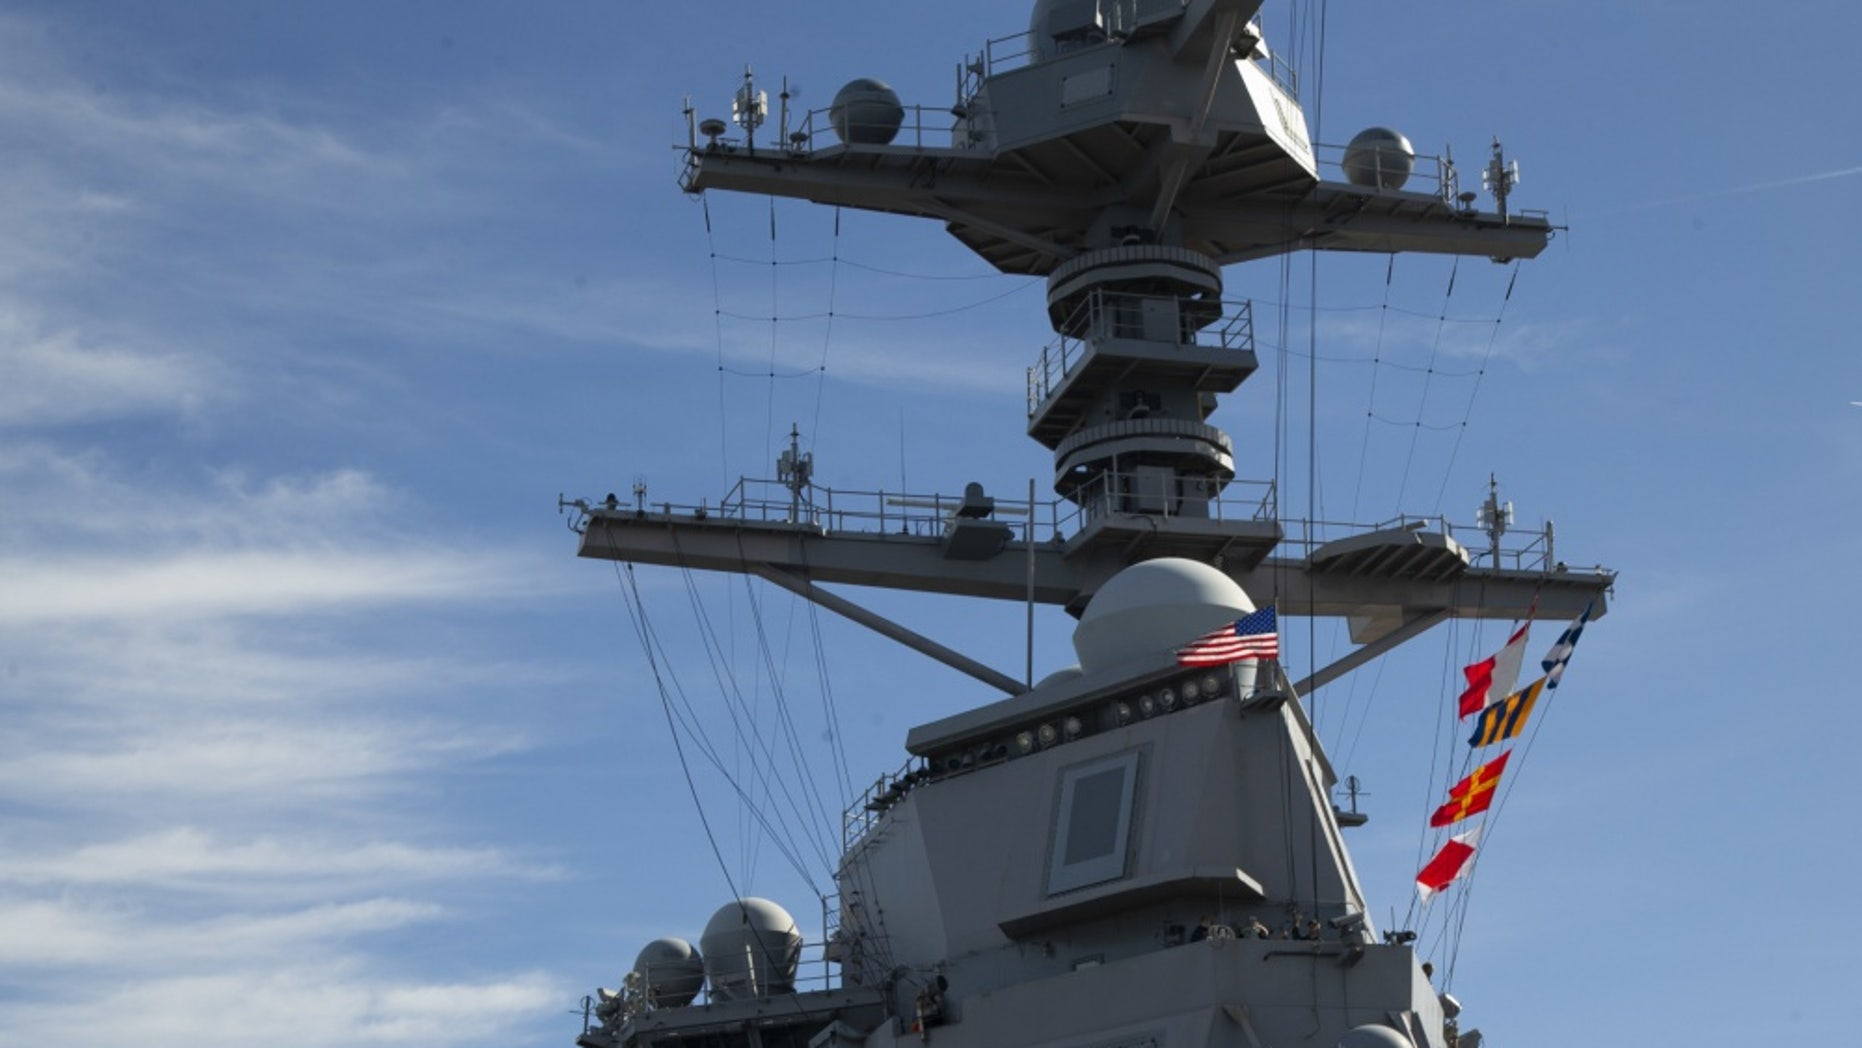 USS Gerald R. Ford (CVN 78) raises the American flag on it's mast as the ship get underway, Feb. 3, 2020 - file photo.